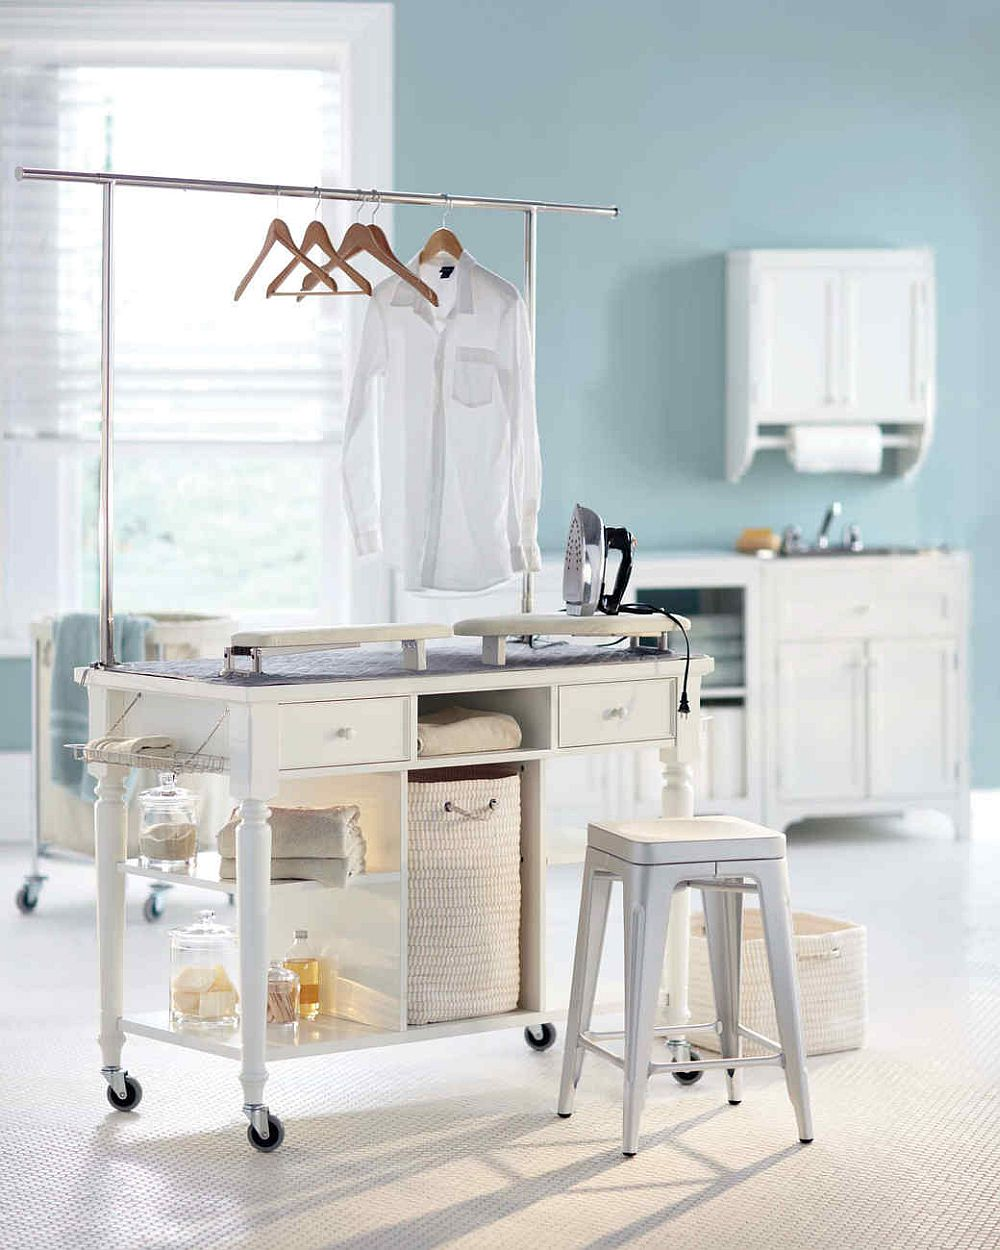 Ironing Board Cabinet Ikea Laundry Room Carts: 12 Mobile And Space-savvy Ways To